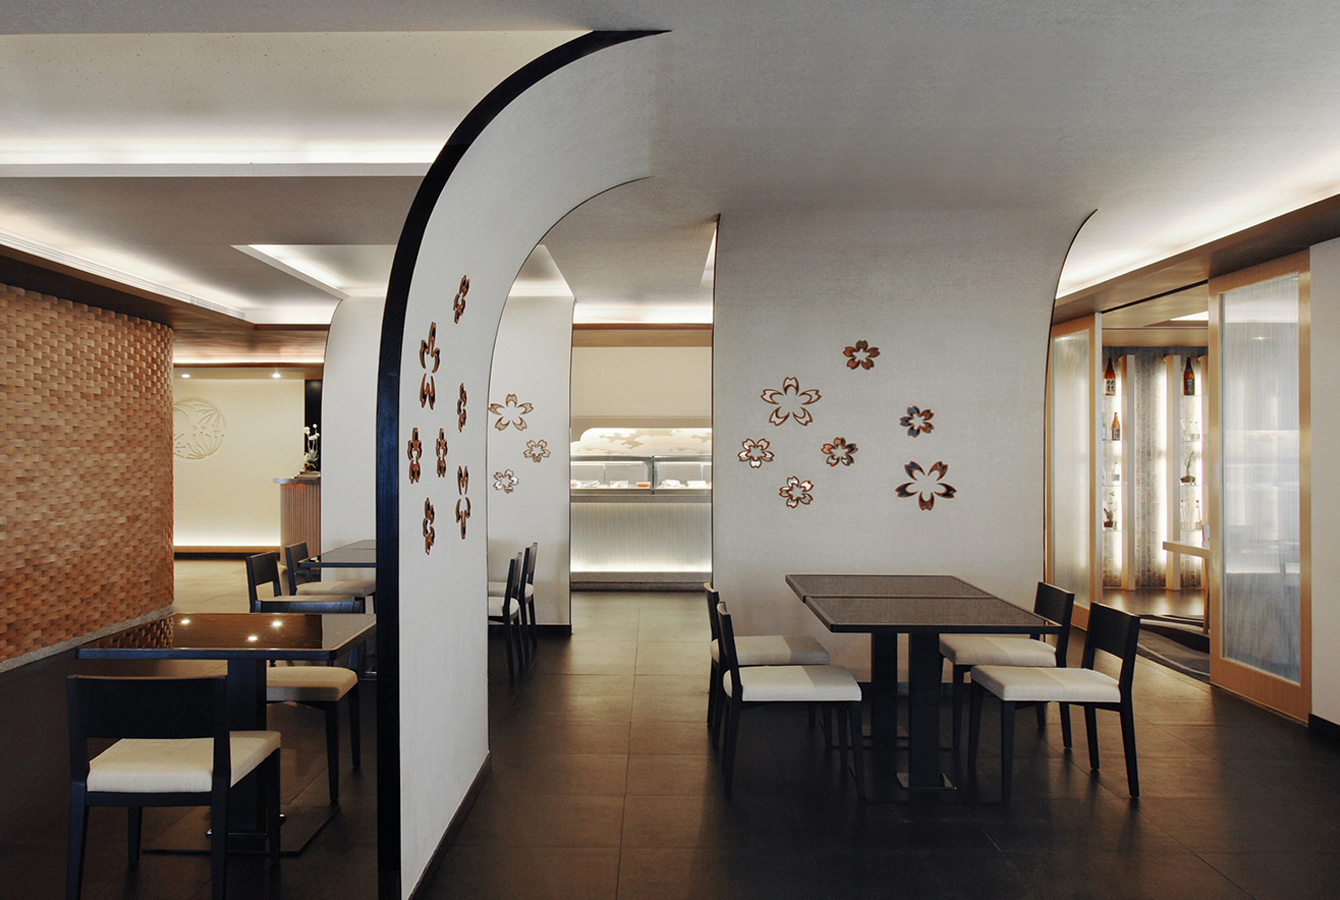 To Celebrate The Time Honored Japanese Culinary Traditions Its Interior Design Is Fundamentally Traditional Yet Endowed With A Contemporary Edge